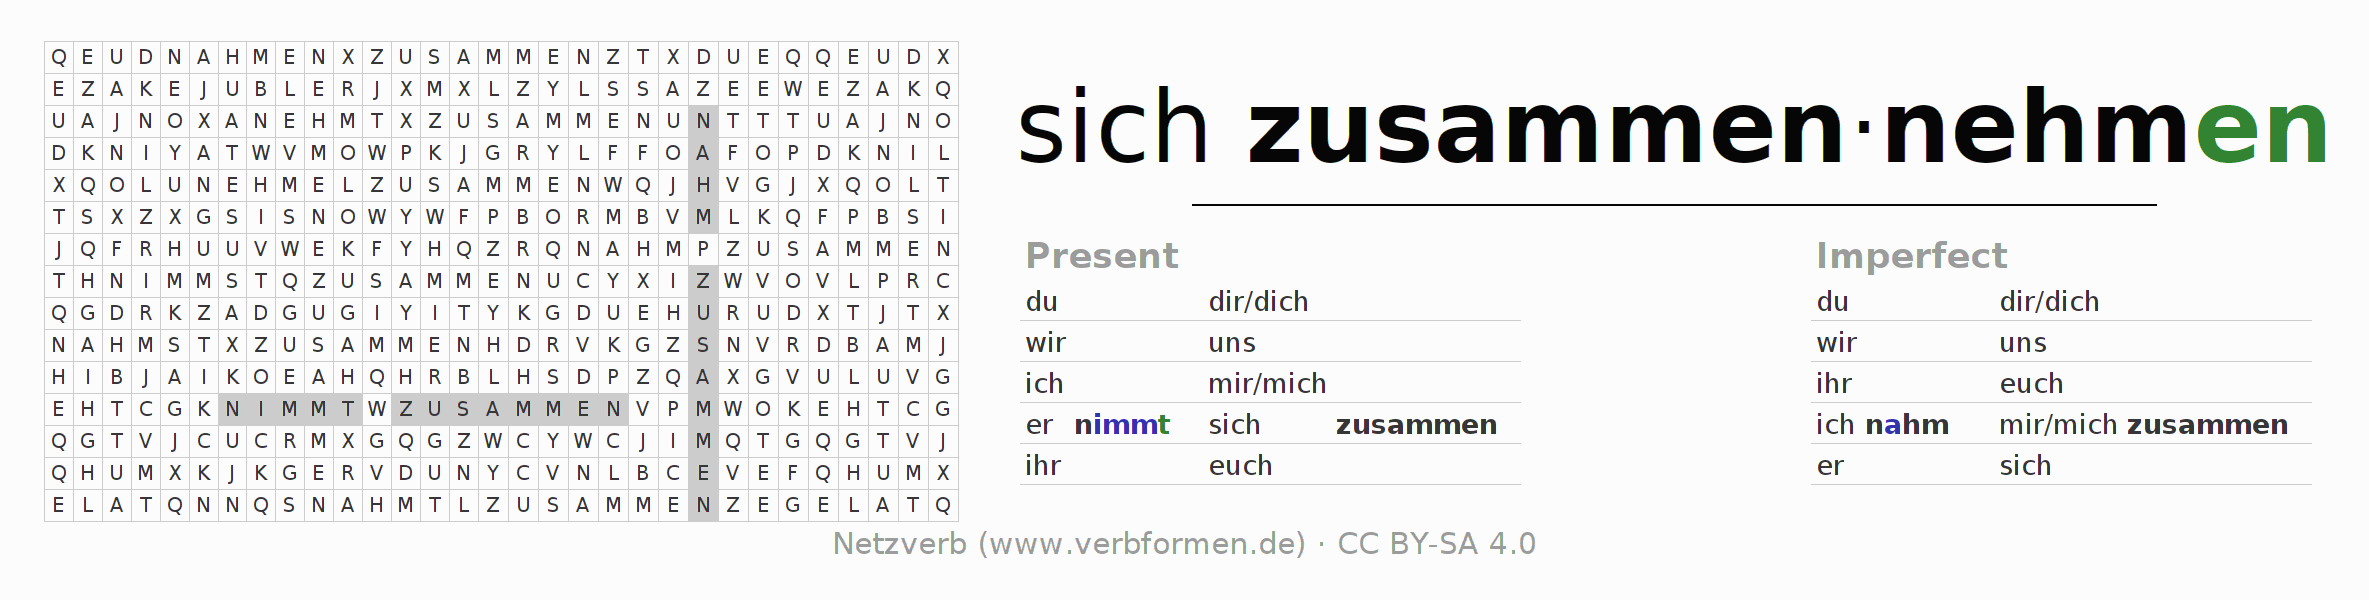 Word search puzzle for the conjugation of the verb sich zusammennehmen